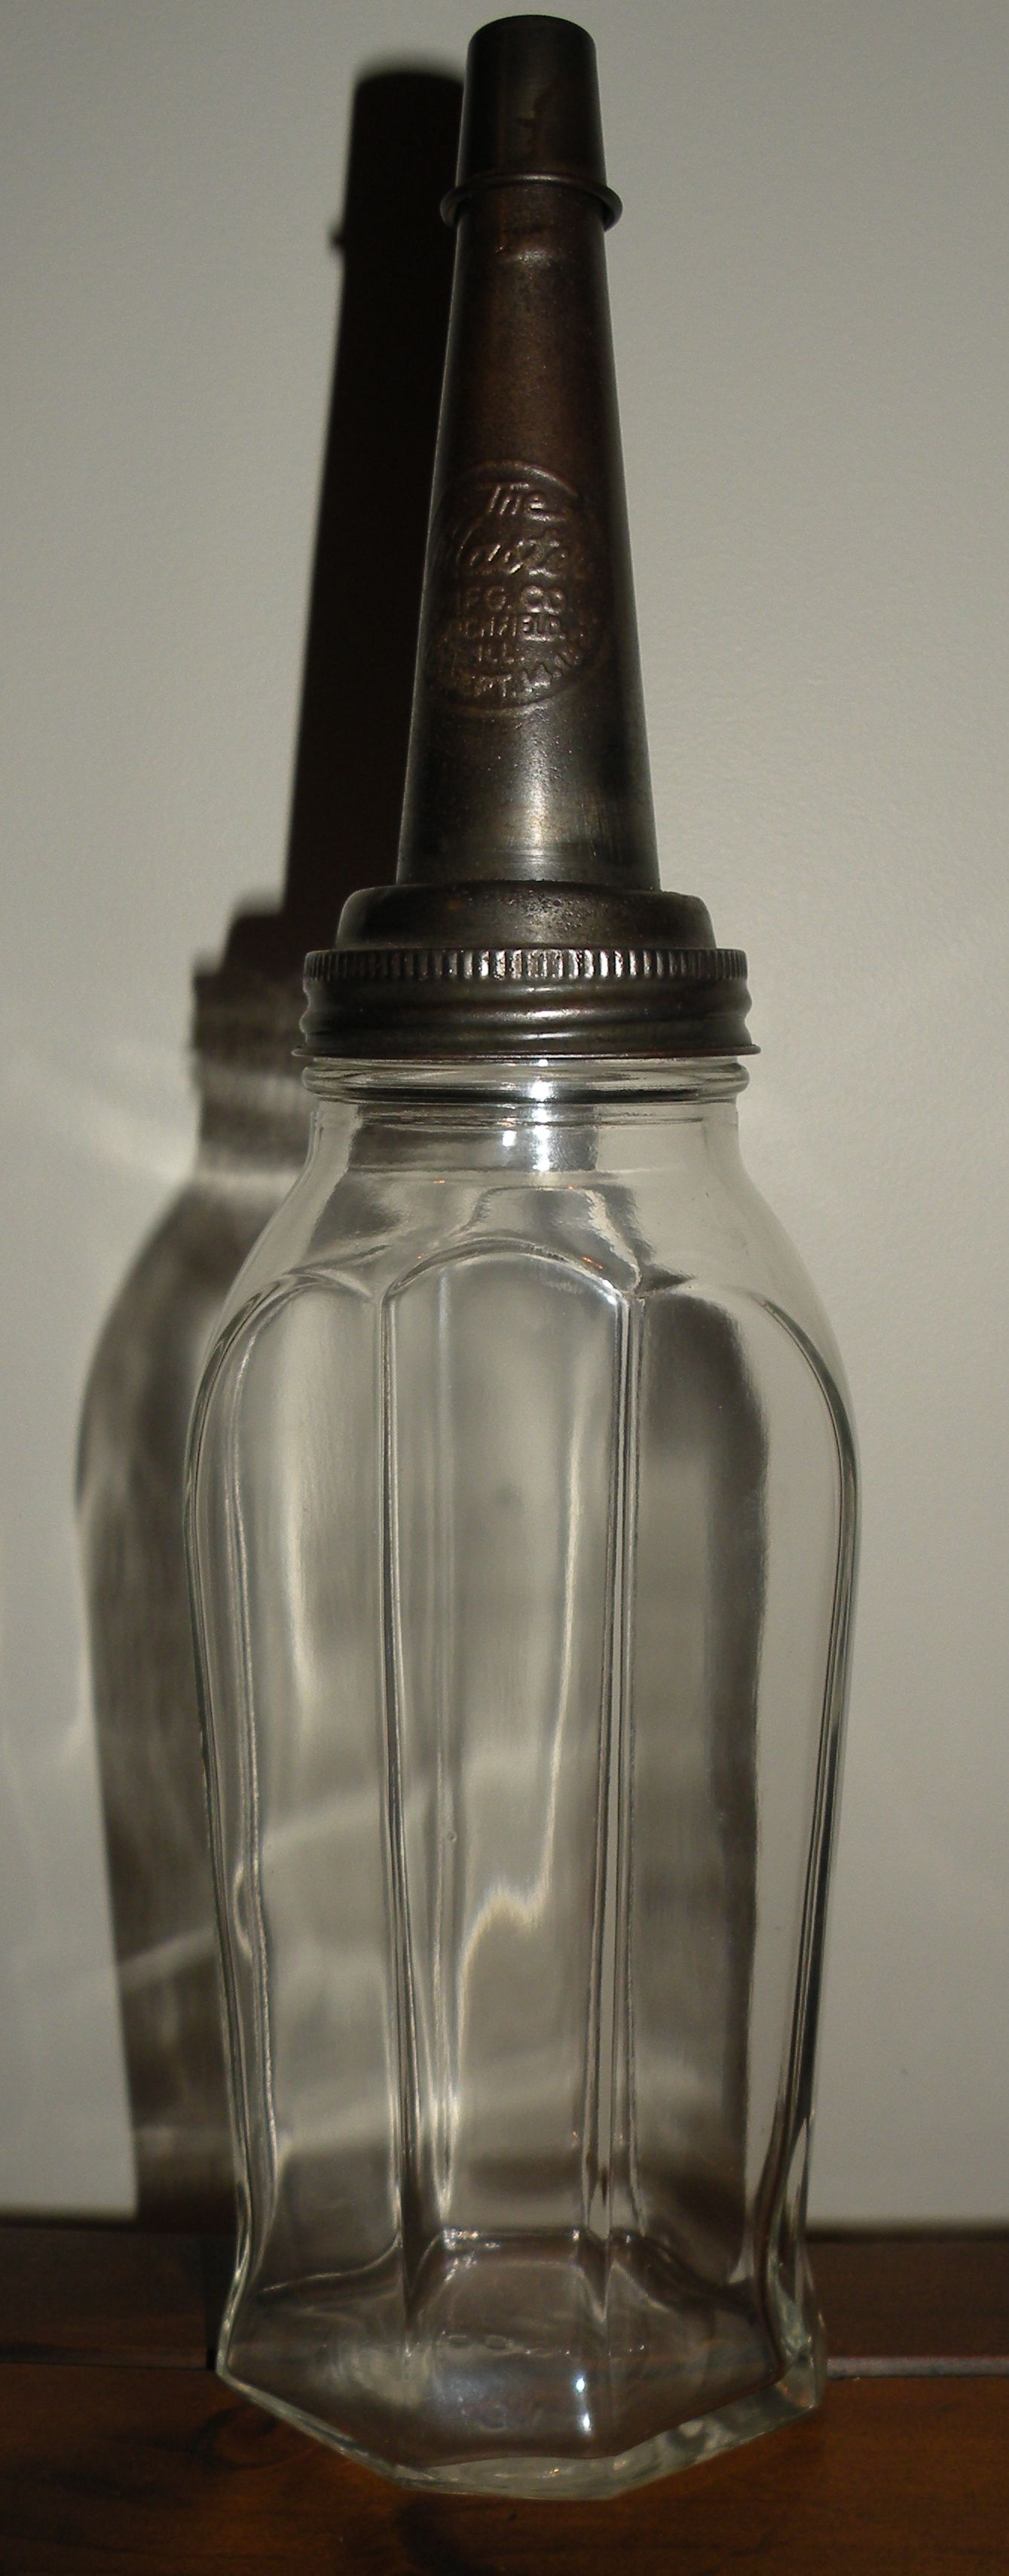 I Love These Unusual Motor Oil Bottles They Look Great Vintage Oil Cans Vintage Gas Pumps Oil Bottle